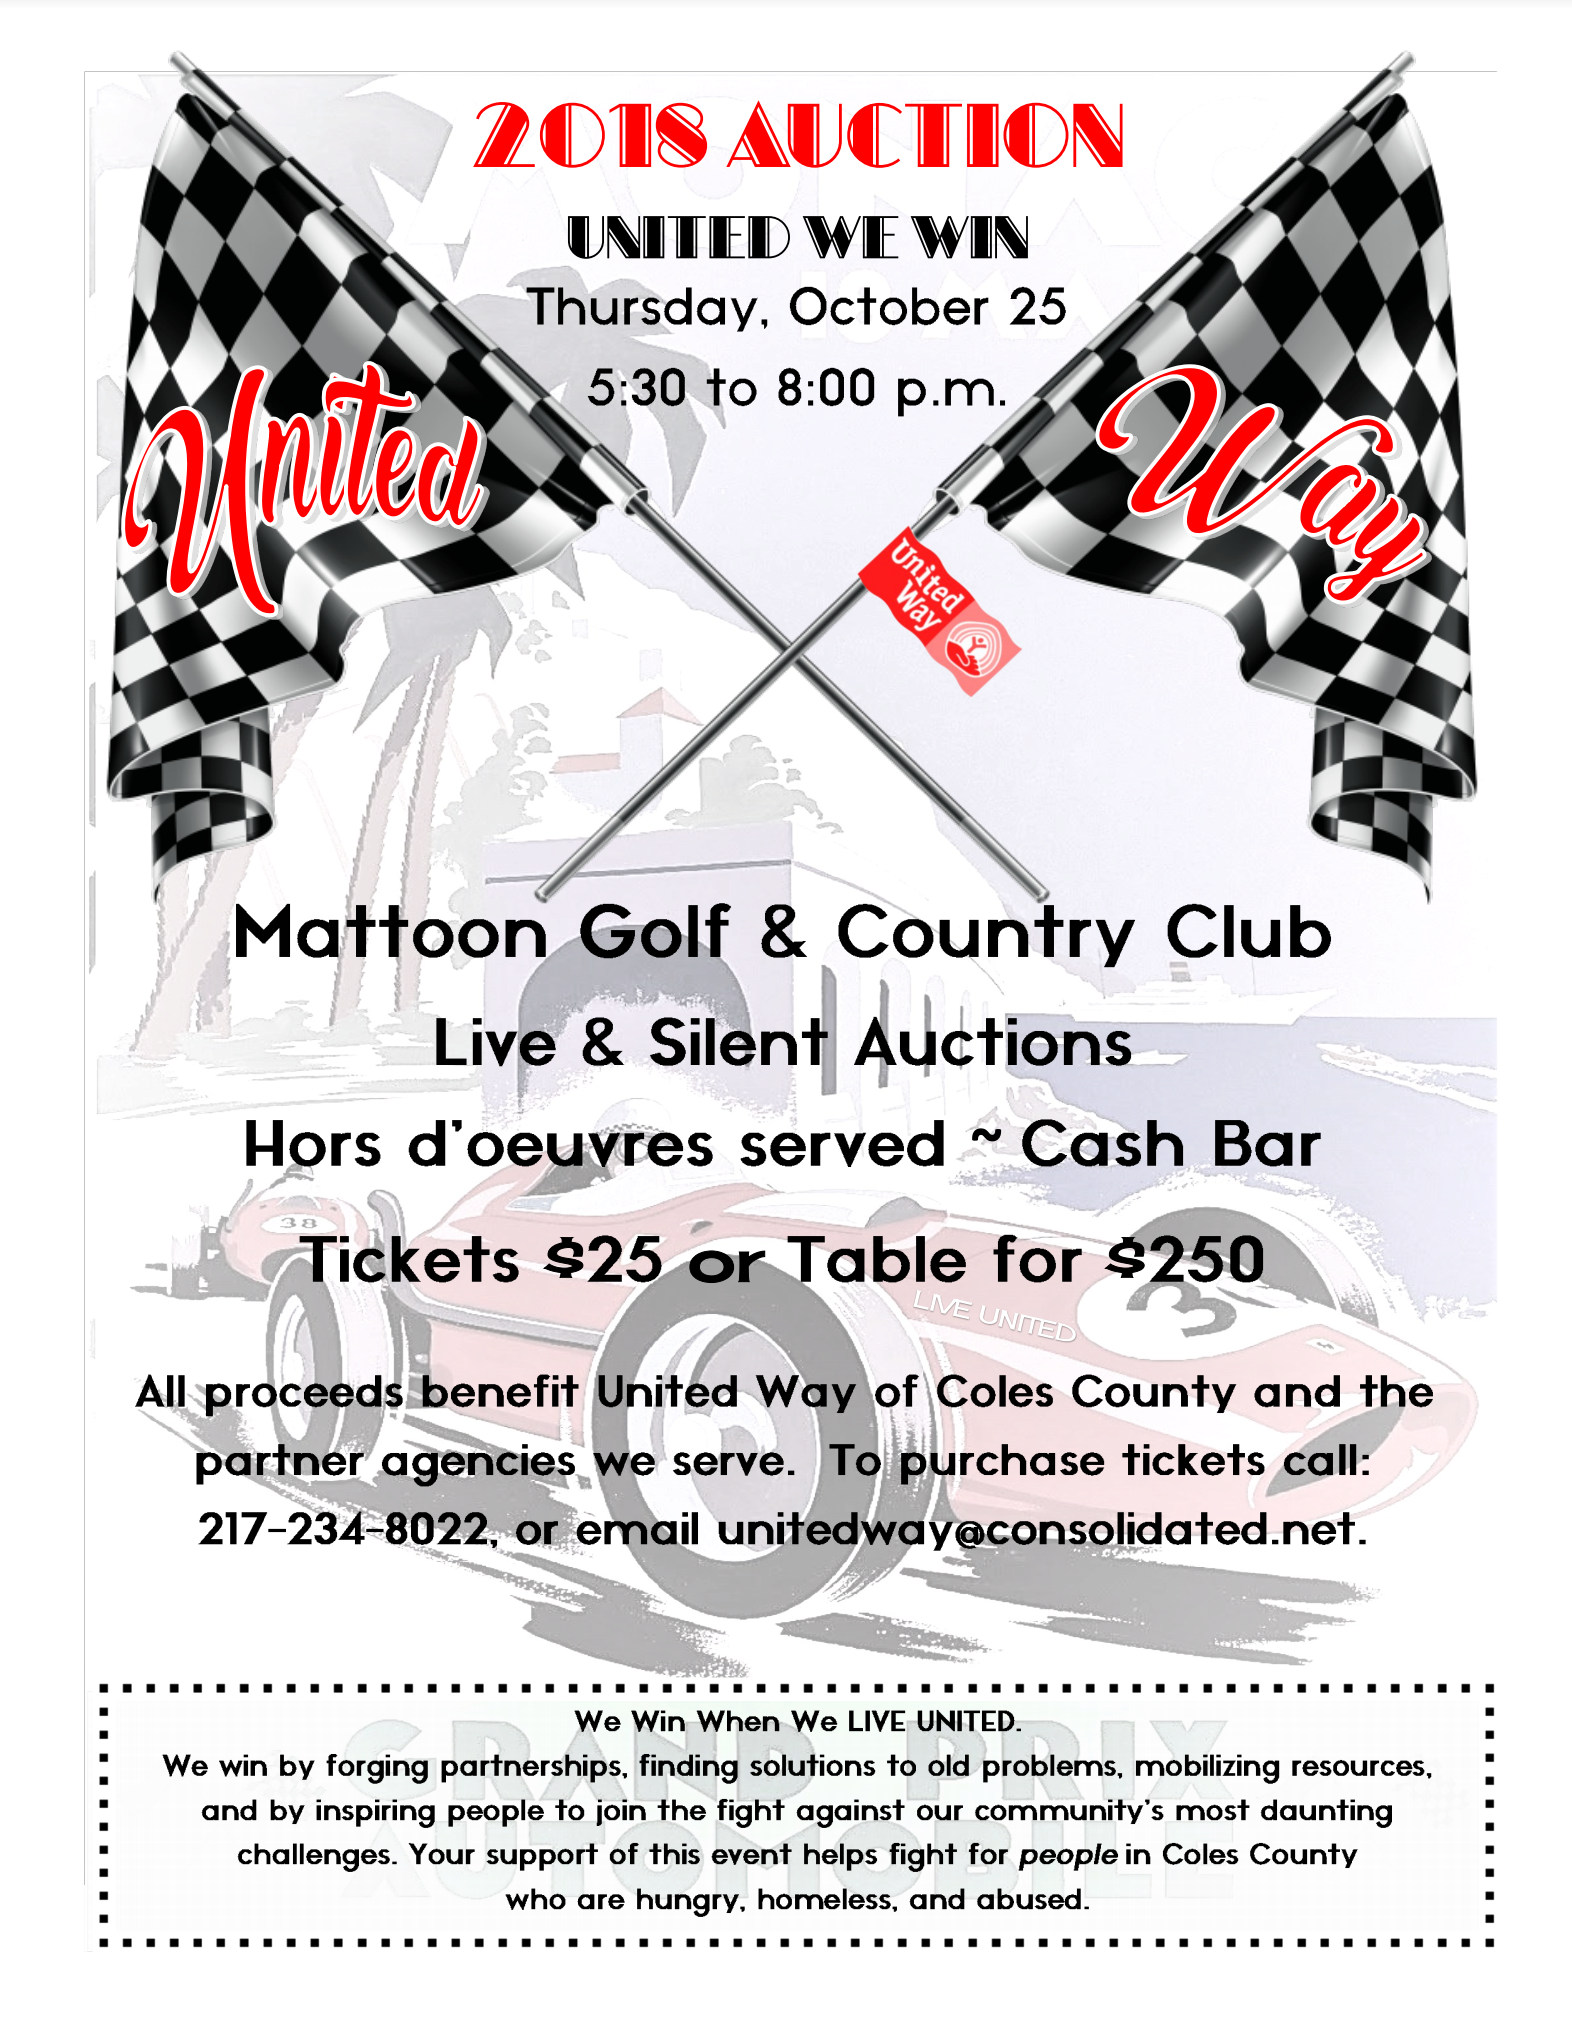 United Way of Coles County Auction